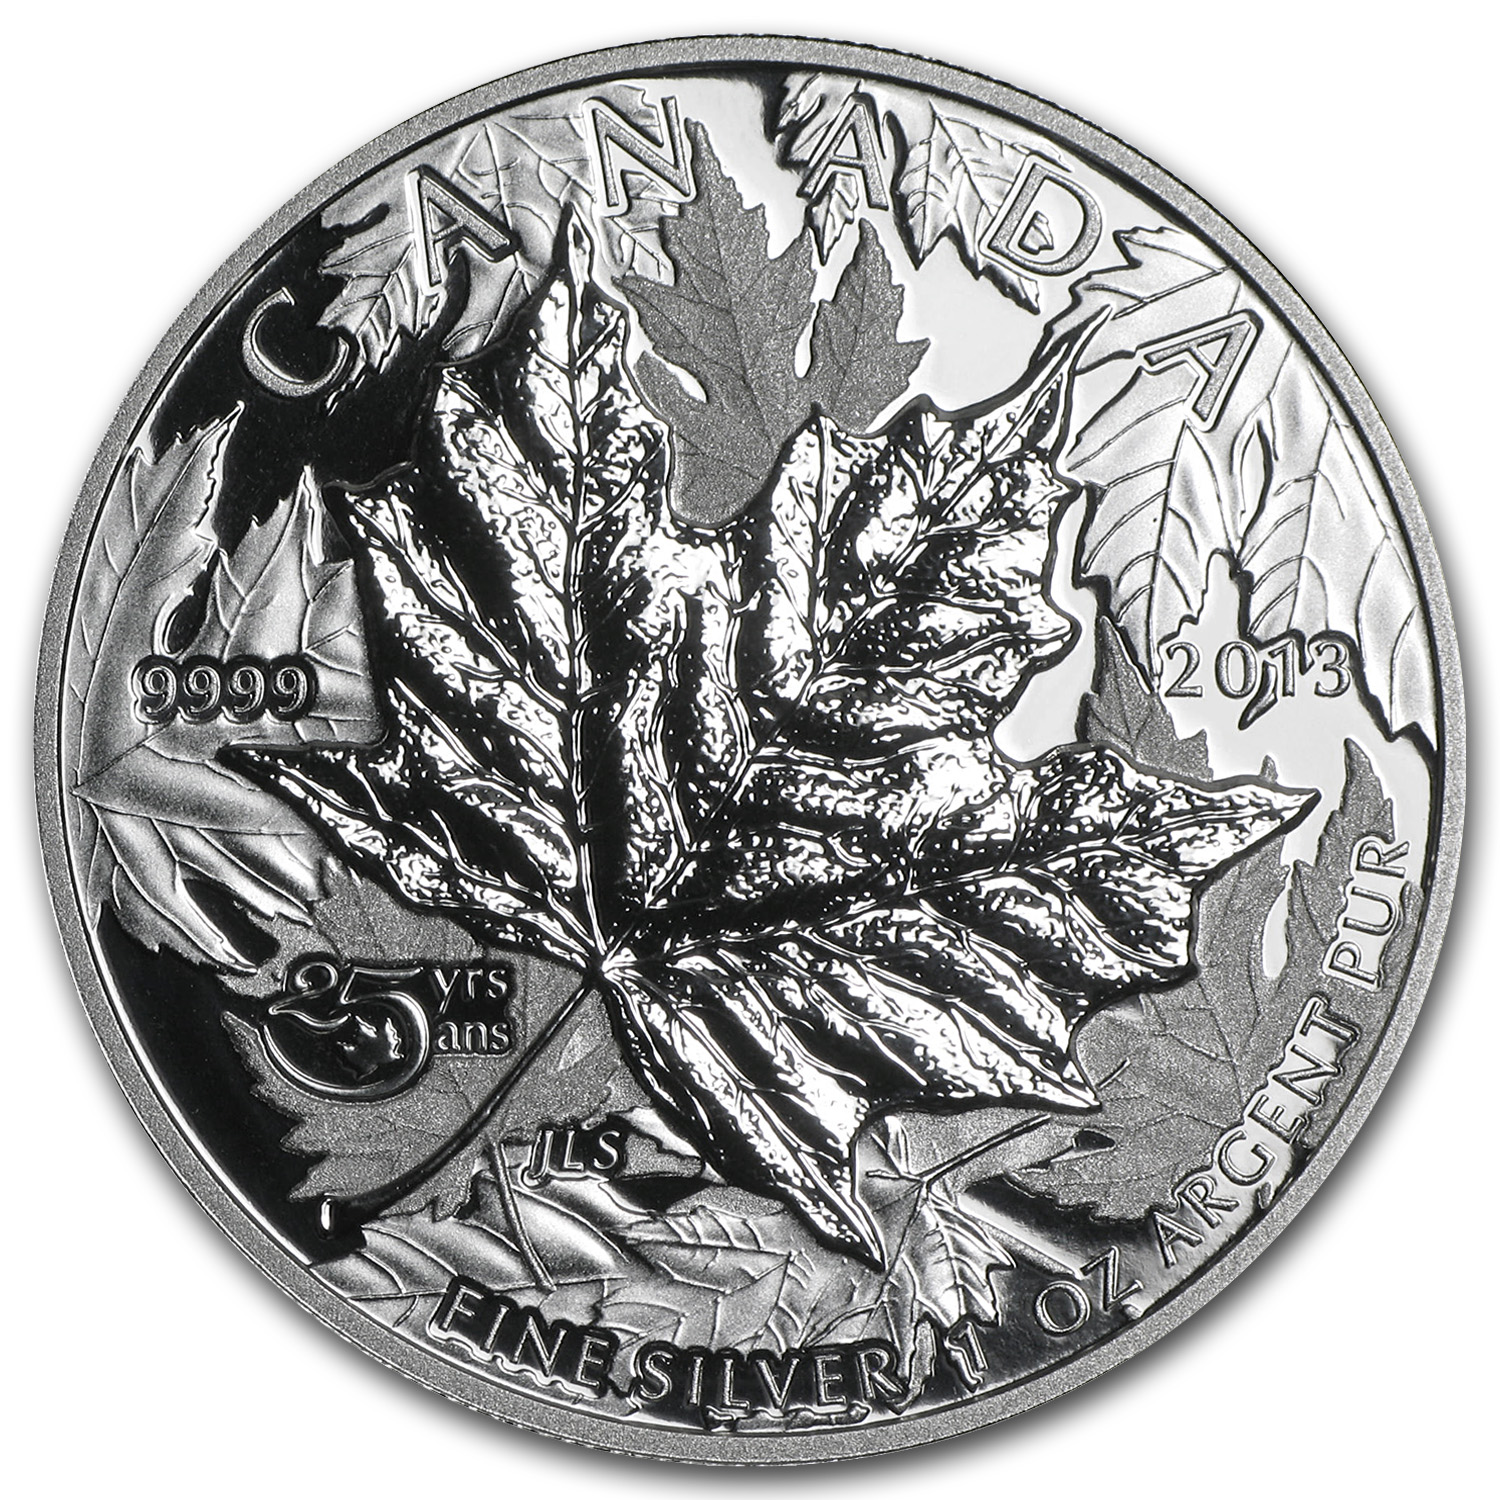 2013 Canada 1 oz Silver Maple Leaf (25th Anniv, HR, Piedfort)